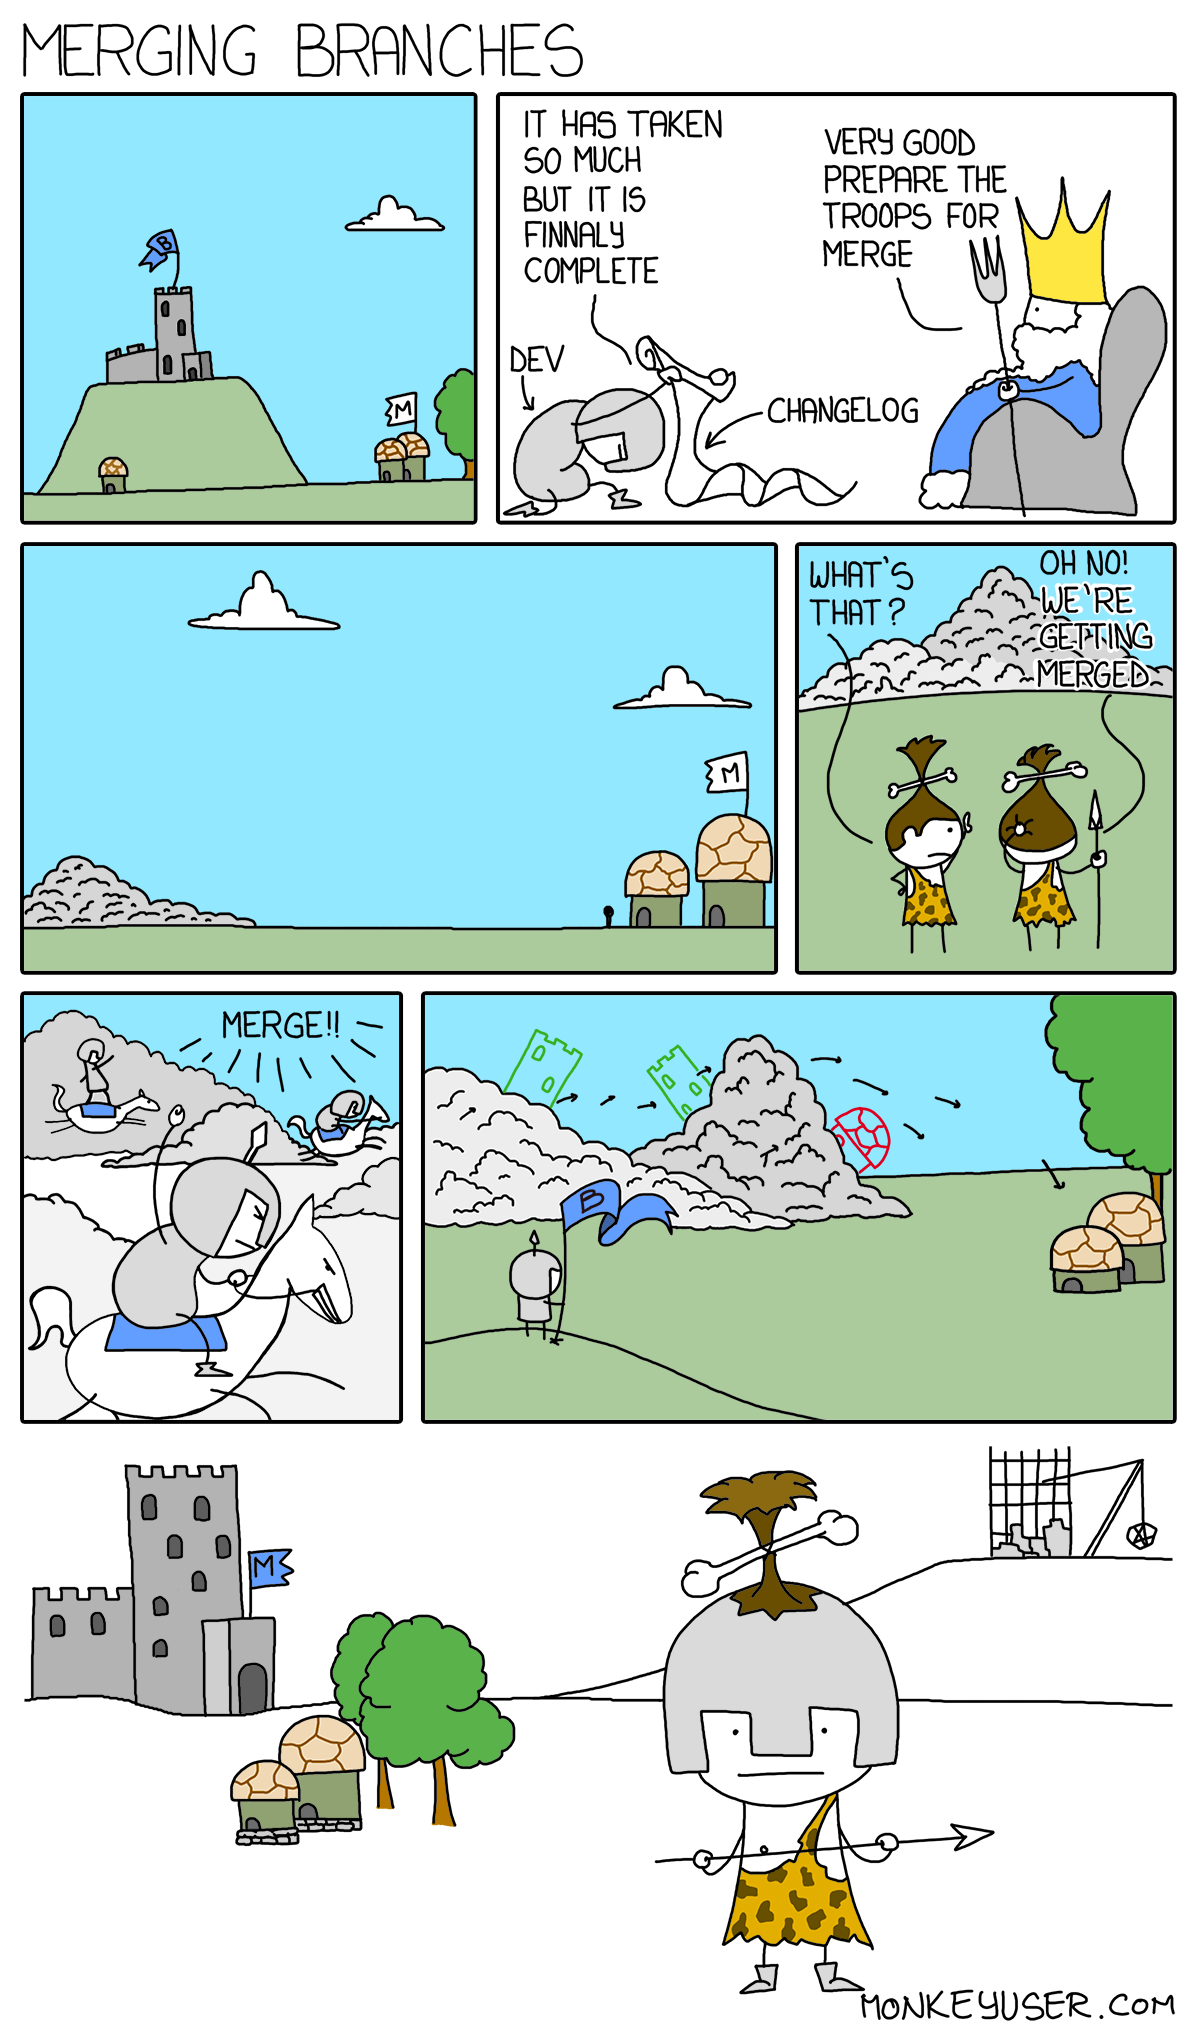 "The comic opens depicting clear blue skies with small puffs of white clouds in the distance. In the foreground, a tall castle stands atop a green hill, proudly displaying a blue flag marked with a 'B' from the tallest tower. Down below, simple huts litter the landscape. A king is depicted in a throne room wearing a large golden crown, adorning a blue velvet robe with a trident in his left hand. Kneeling before him, holding a scroll marked as 'changelog', is a developer dressed in drab gray garb. Developer: ""It has taken so much but it is finally complete."" King: ""Very good. Prepare the troops for merge."" Once again, clear blue skies are depicted. This time, the castle is no longer in view, and the smaller huts from the periphery are now the focus of the panel. These huts wave a white flag marked with an 'M' atop them. Approaching is a large mass of individuals, obfuscated by a cloud of dust that is being kicked up by their approach. The simple tribes people, standing together and rubbing their heads in confusion, look upon the mass of approaching soldiers in contemplation of the King's reasoning. They each wear stereotypical caveman clothing: cheetah fur togas and bones through their high ponytails. Tribesman 1: ""What's that?"" Tribesman 2: ""Oh no! We're getting merged."" Now the in foreground and taking up most of the image, the soldiers are shown running upon horseback, their faces determined as they approach the tribal gathering. Soldiers (in unison): ""MERGE!!"" Panel 6 A sole onlooker, one of the soldiers from the battle, holds the blue flag of his kingdom which is marked with an engraved 'B'. The mass of soldiers collapse upon the village, the dust cloud consuming the area. In the background, feint images depicting green towers and red huts are displayed, alluding to the conflicts that may arise in a merge. Panel 7 The battle is over, and staring at the viewer in confusion is one of the tribesman, holding his spear with a blank expression. In the background, the tribal village remains unscathed from the battle. Further behind, the kingdom is similarly unscathed save for one change: the proud blue flag that once displayed a valiant 'B' has now been replaced with an 'M'."